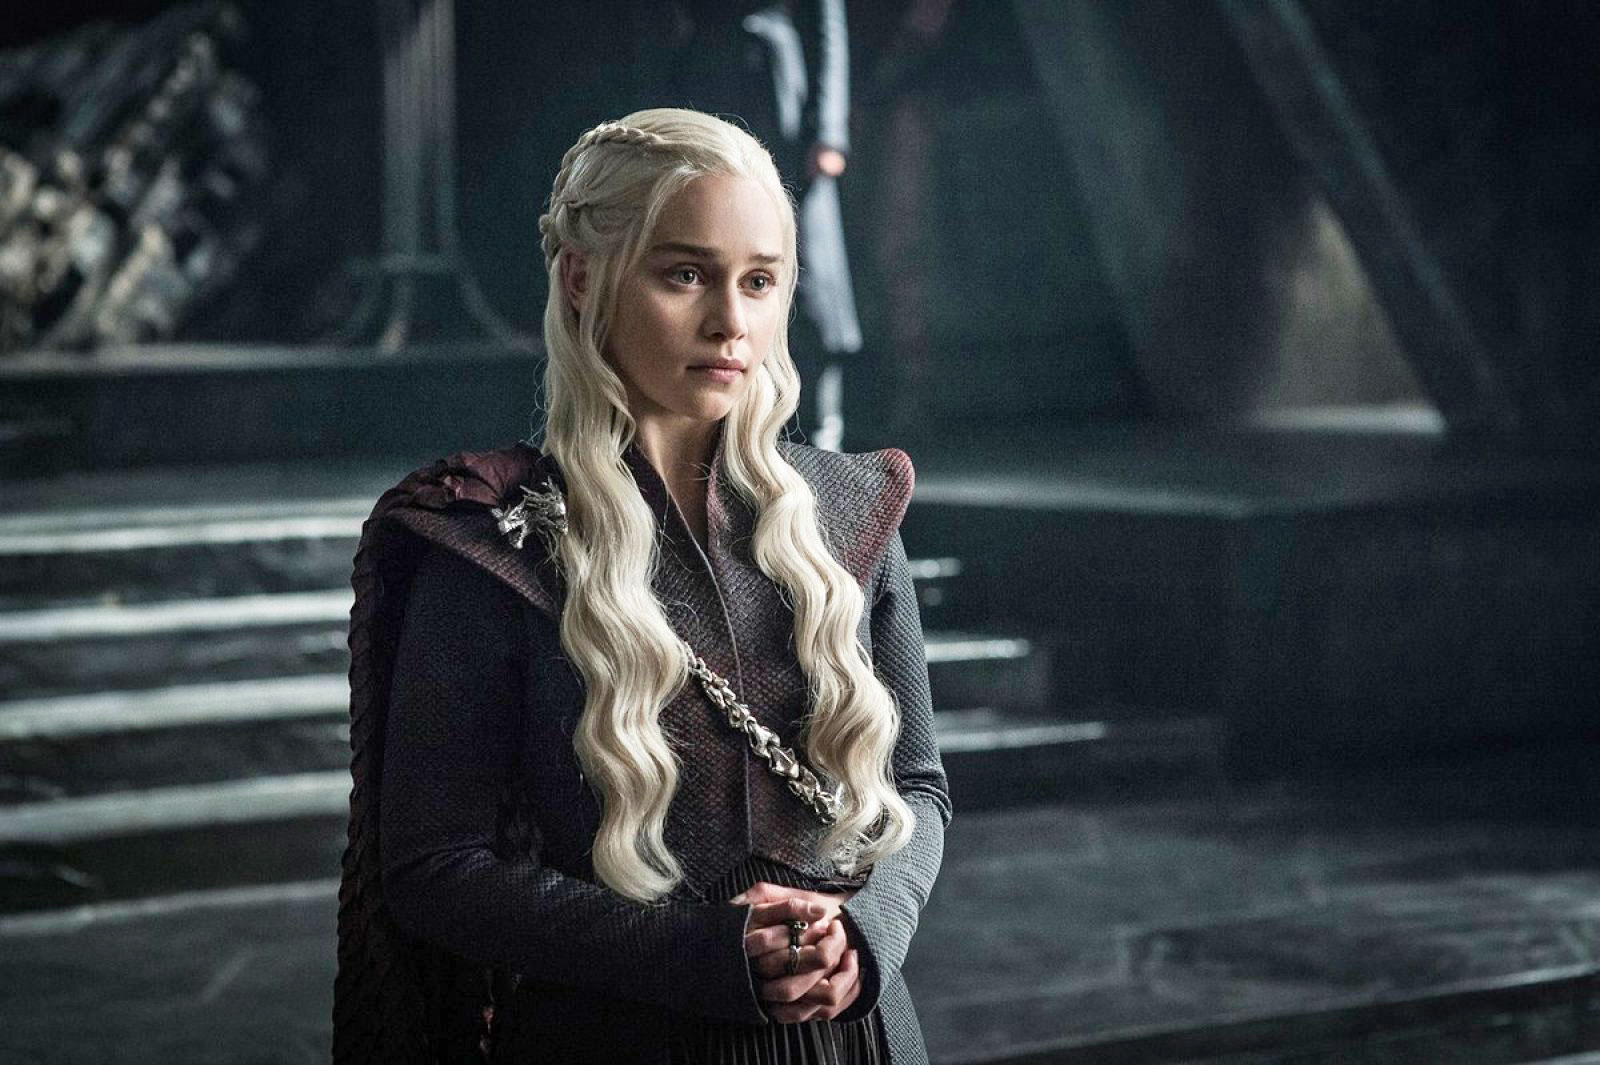 Xfinity TV customers can catch up on 'Game of Thrones' for free